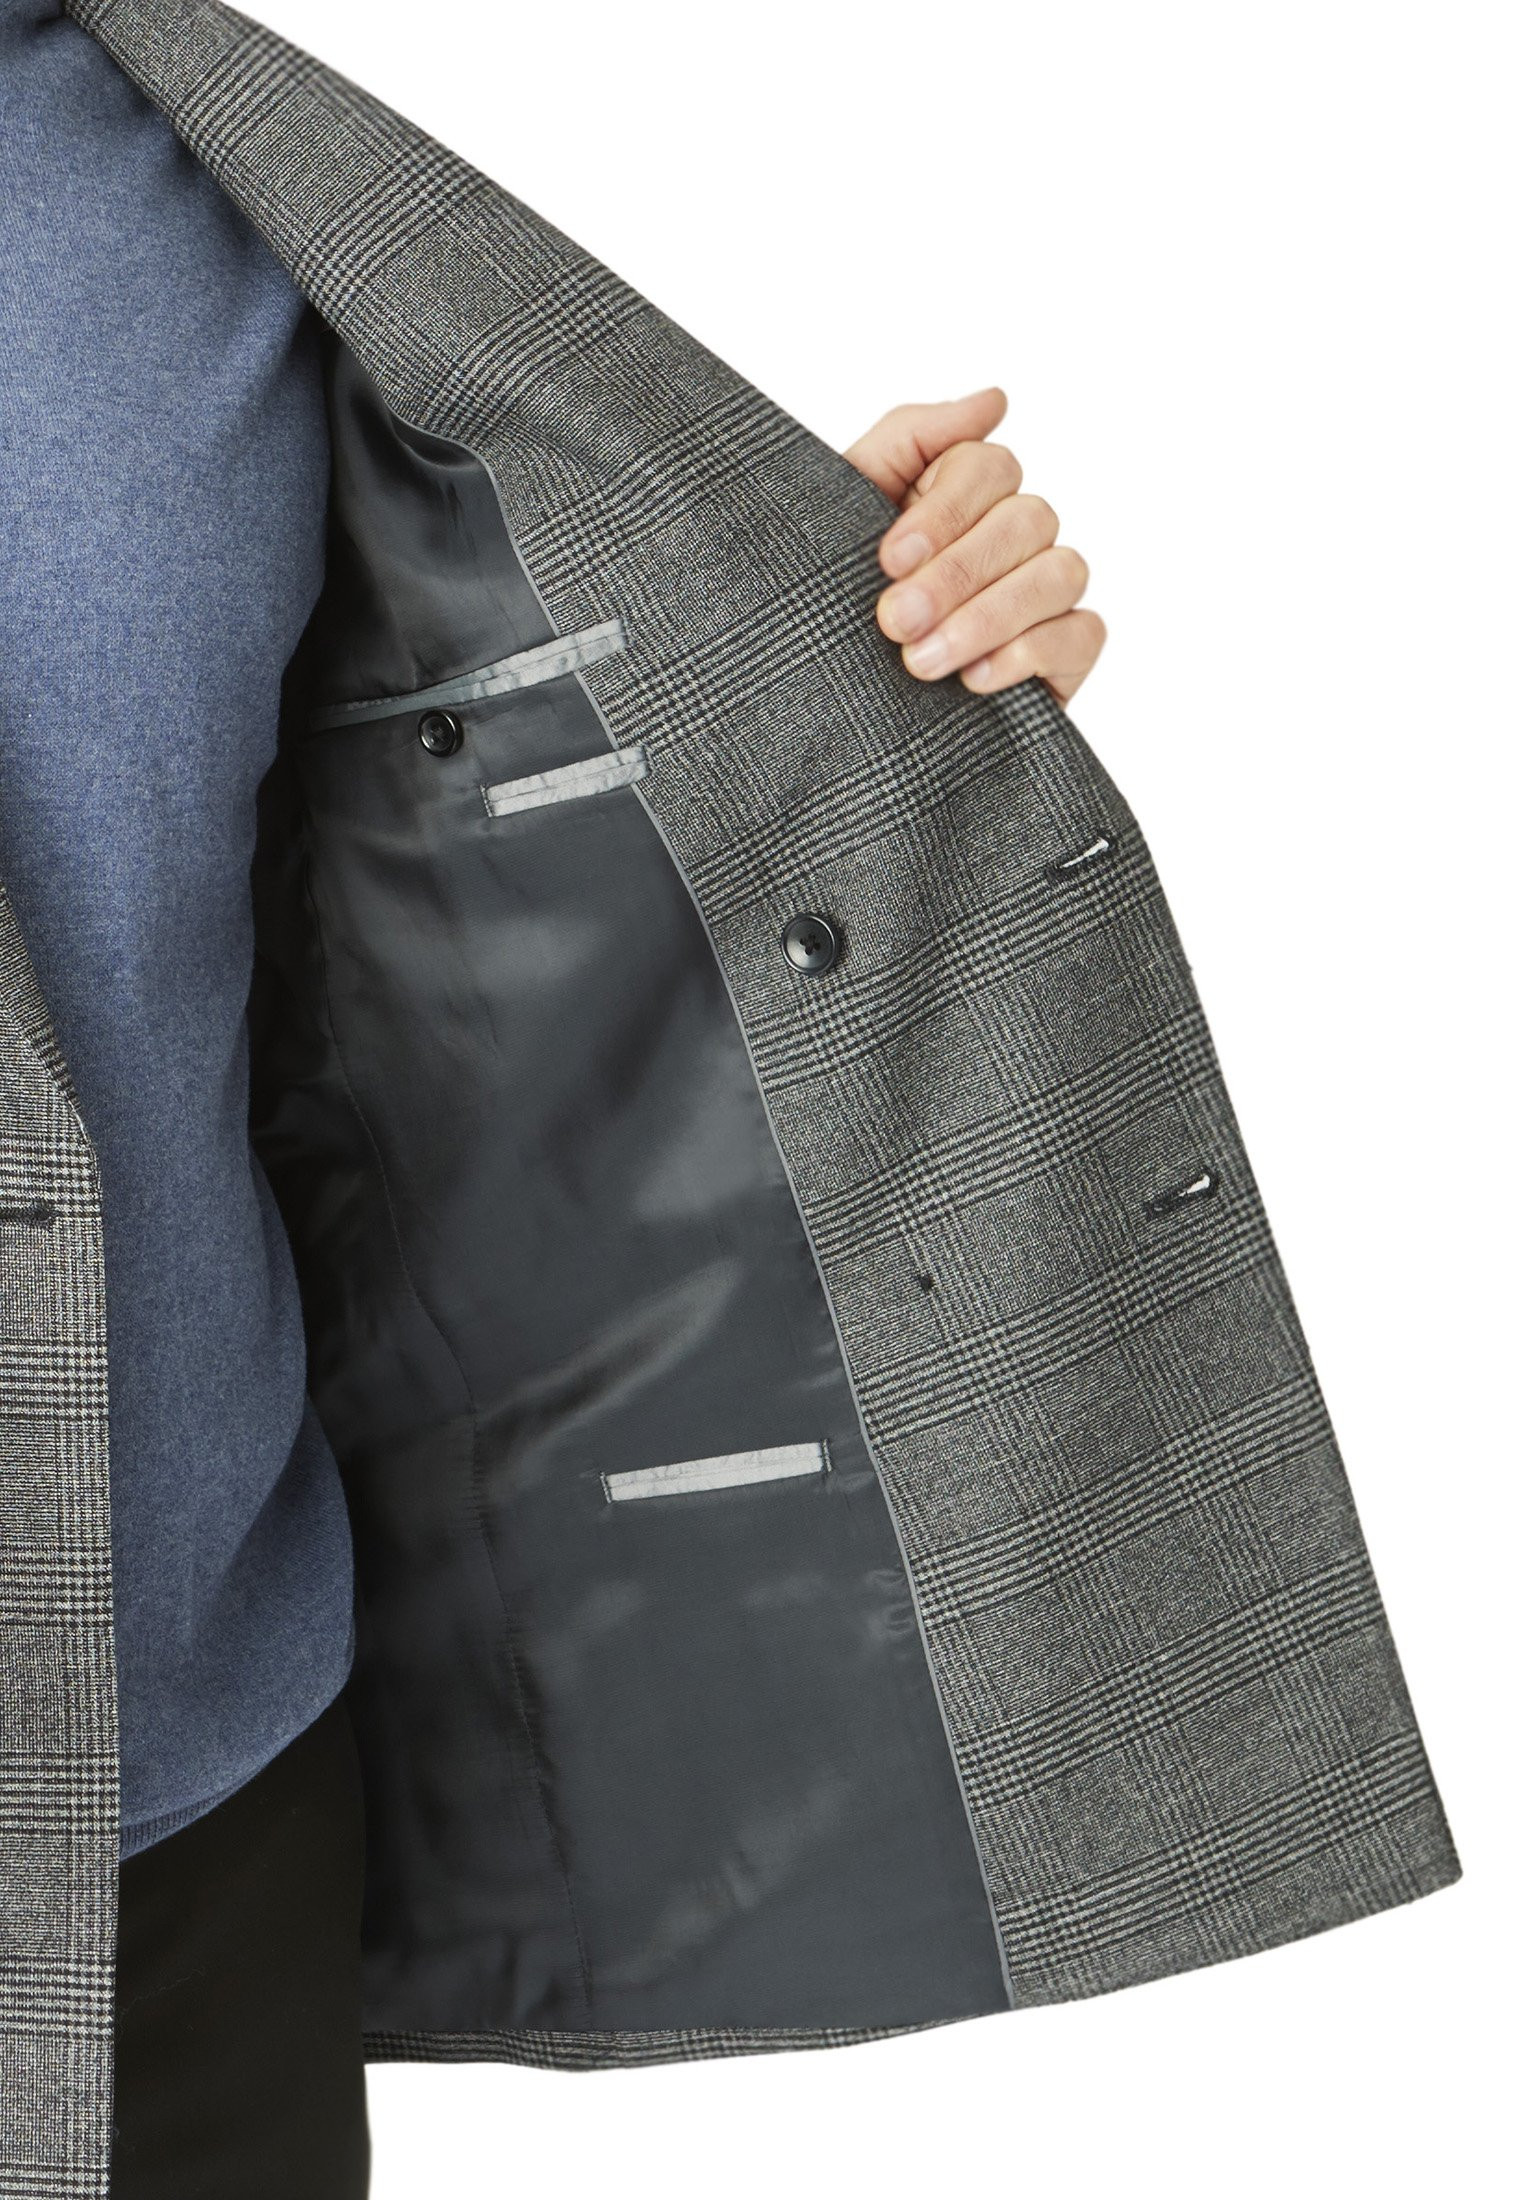 Royston Double Breasted Charcoal Check Suit